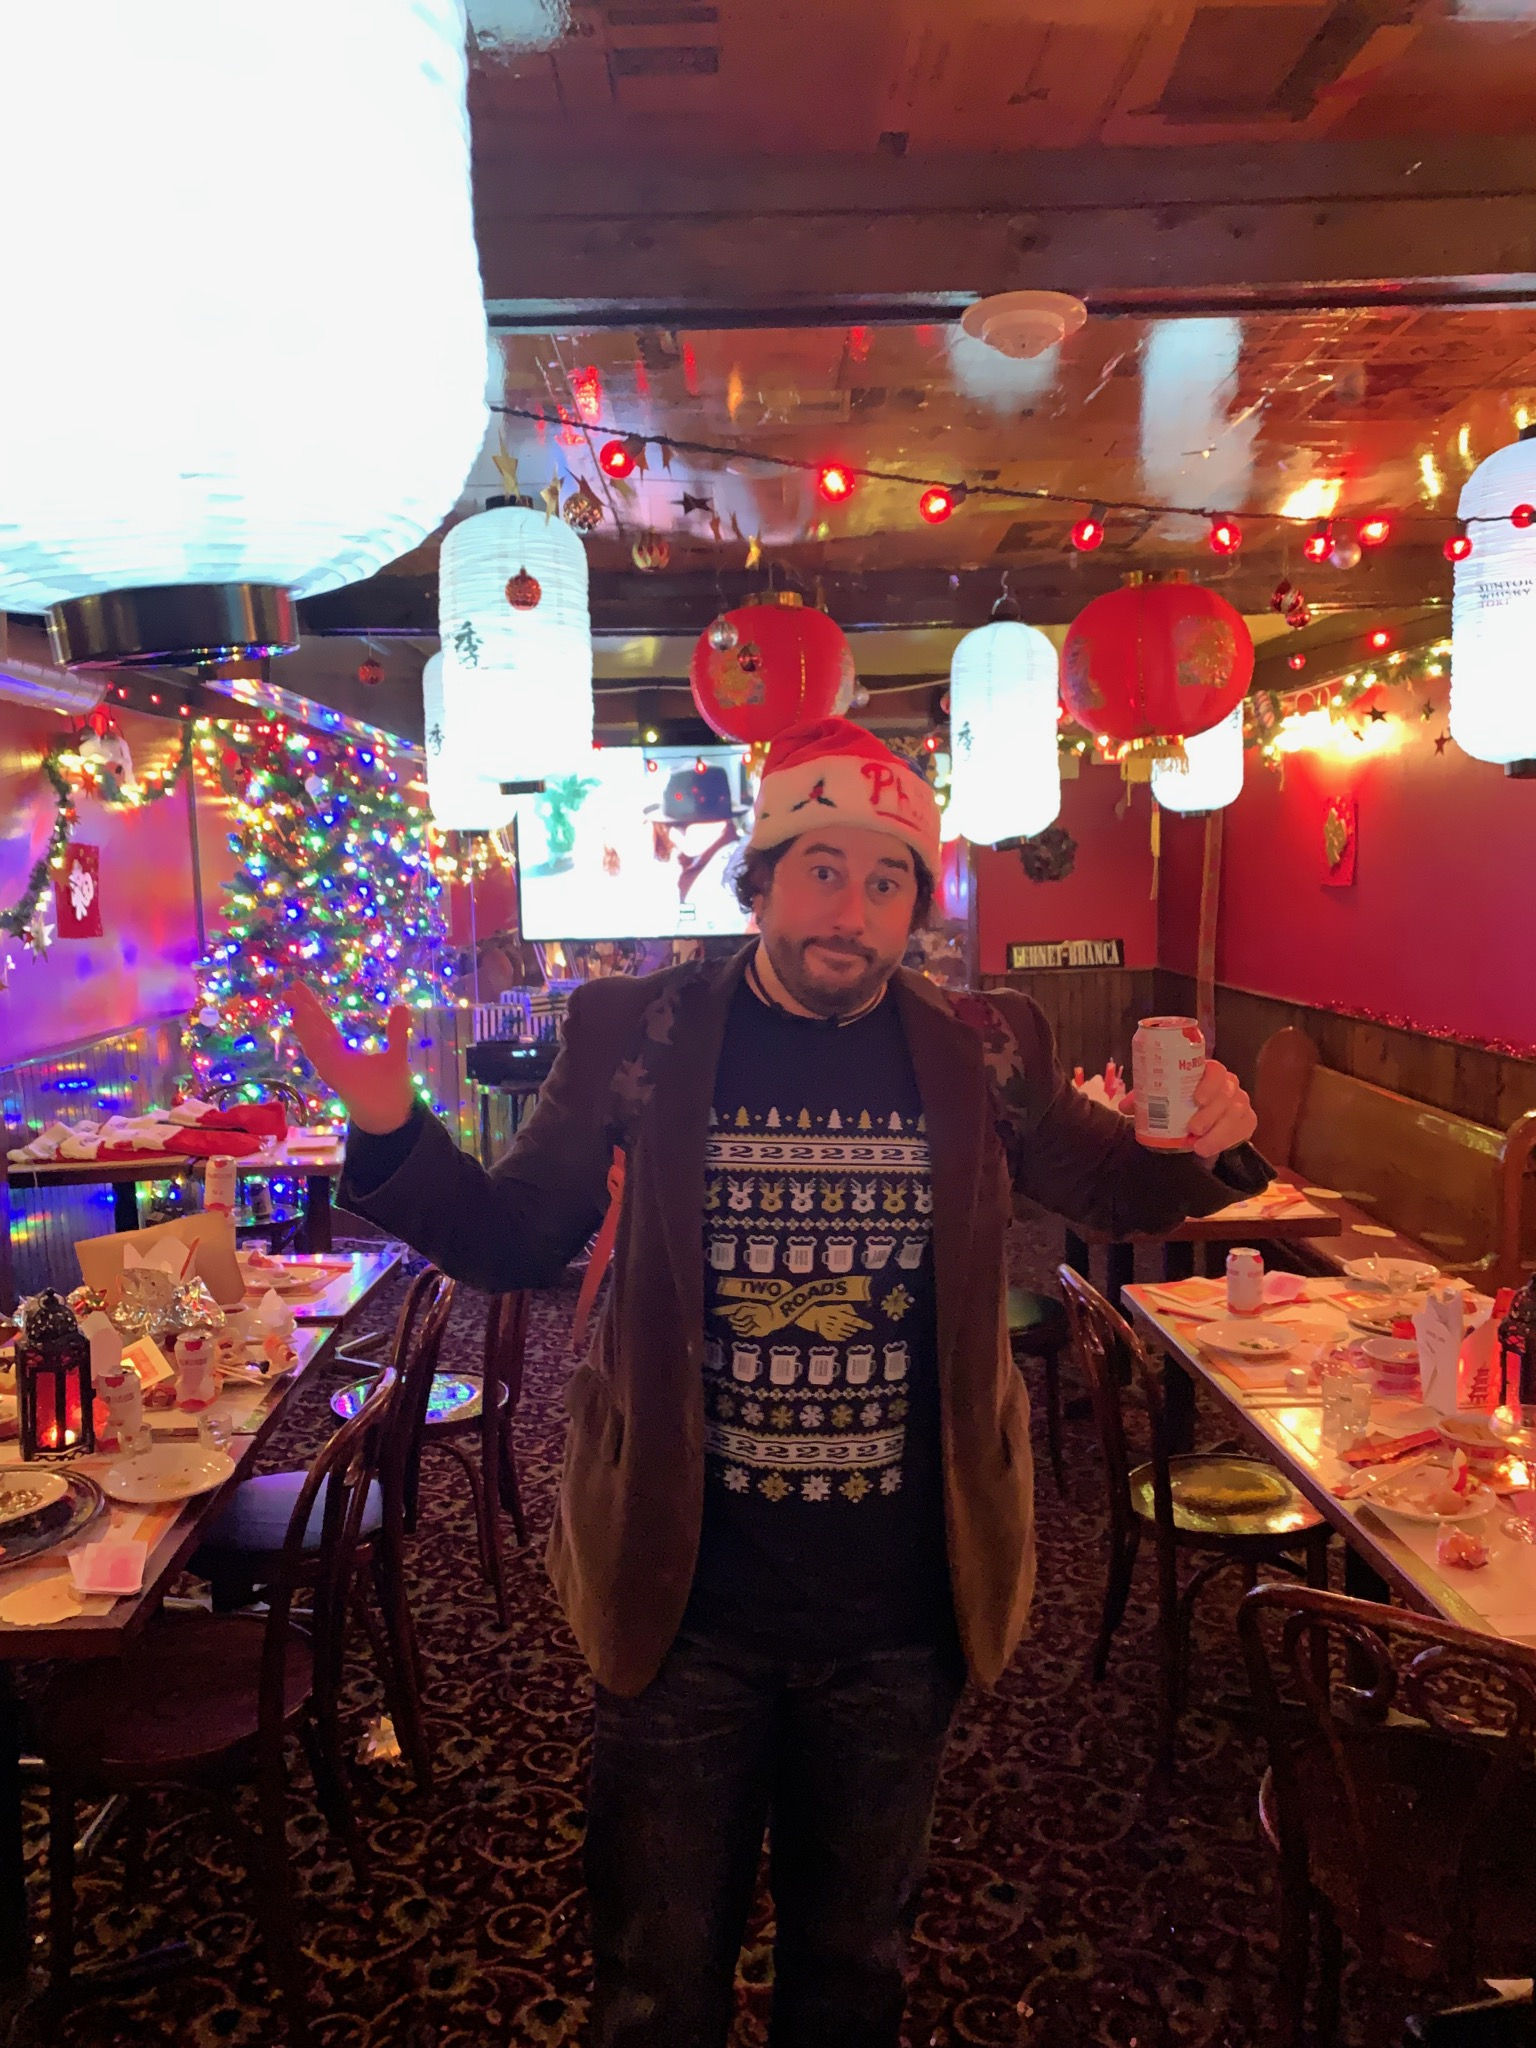 Lee shrugs at pop-up Chinese restaurant rooms at pop-up Xmas bars.